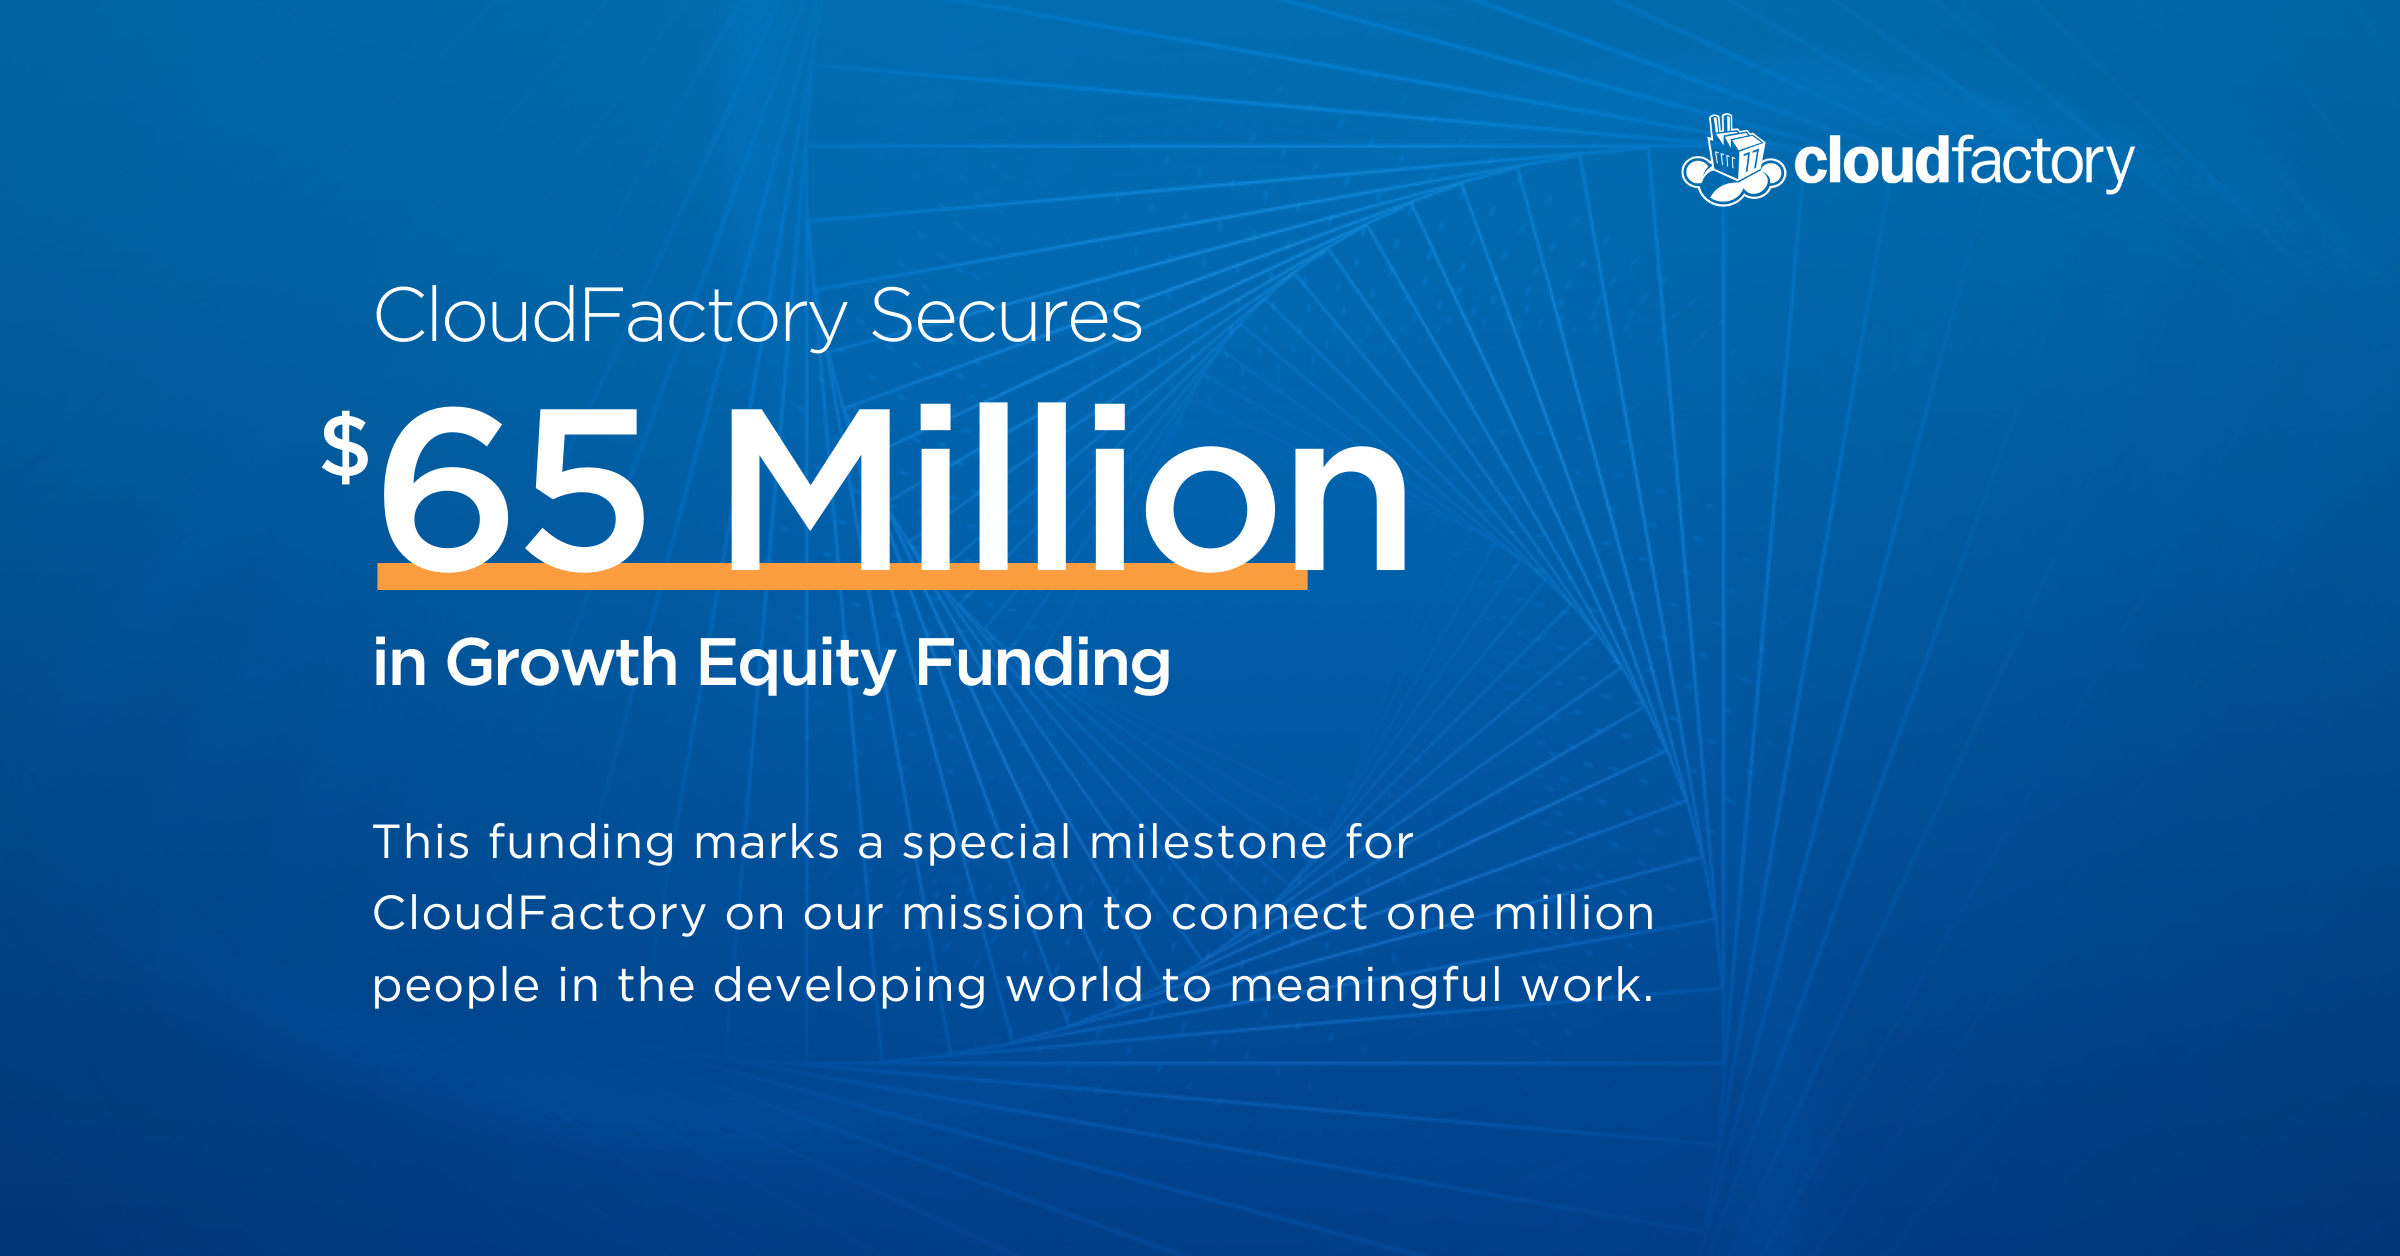 CloudFactory Gets $65 Million on Mission to Create Meaningful Work for 1 Million People